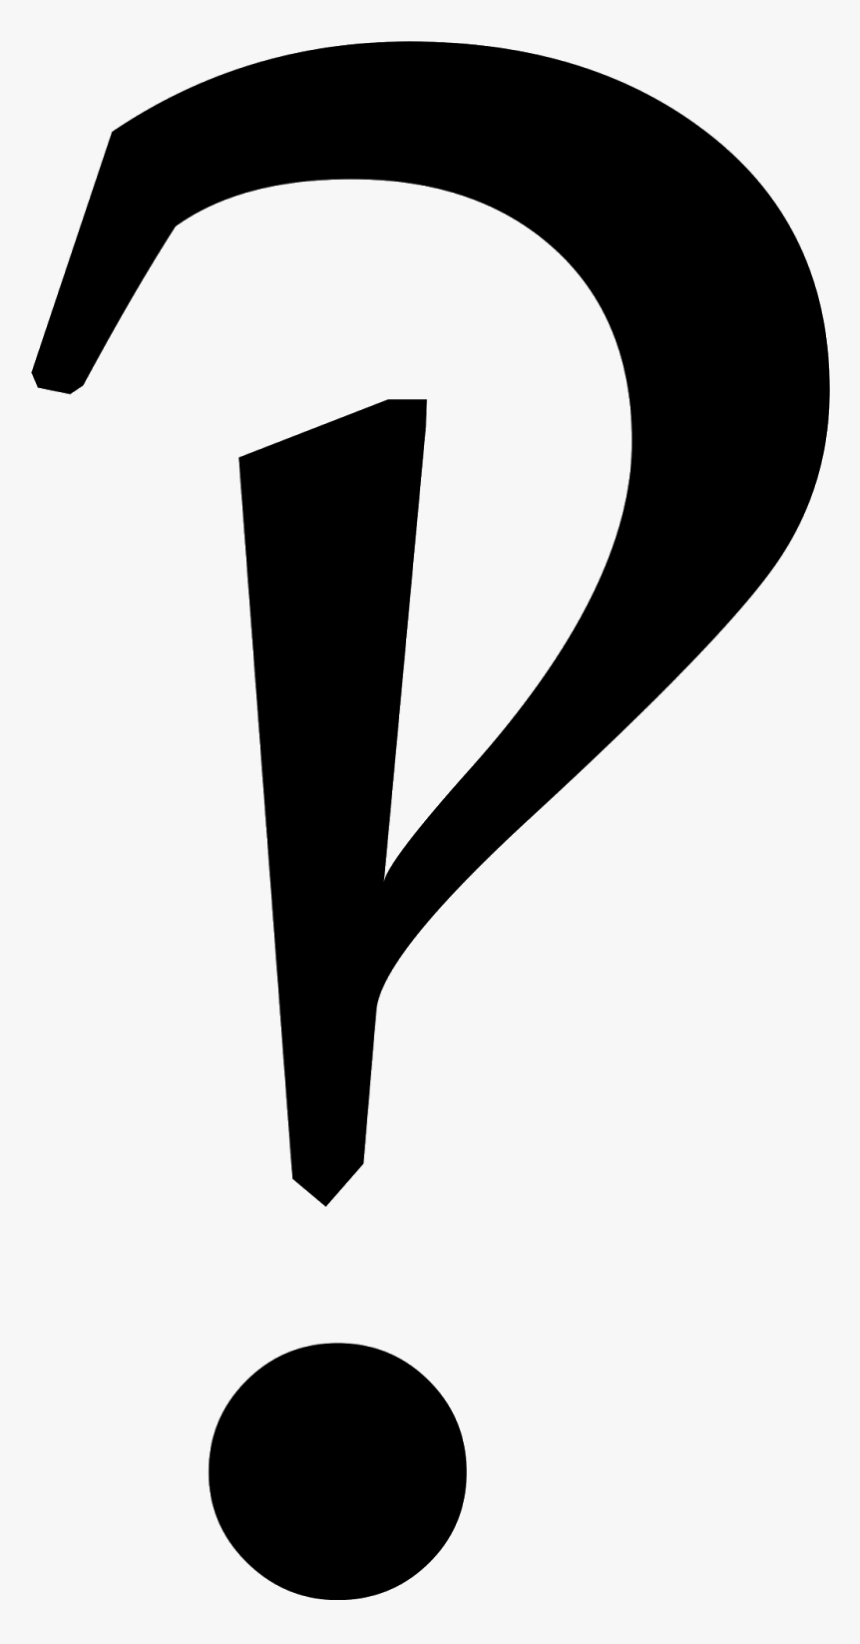 Exclamation Question Mark, HD Png Download, Free Download